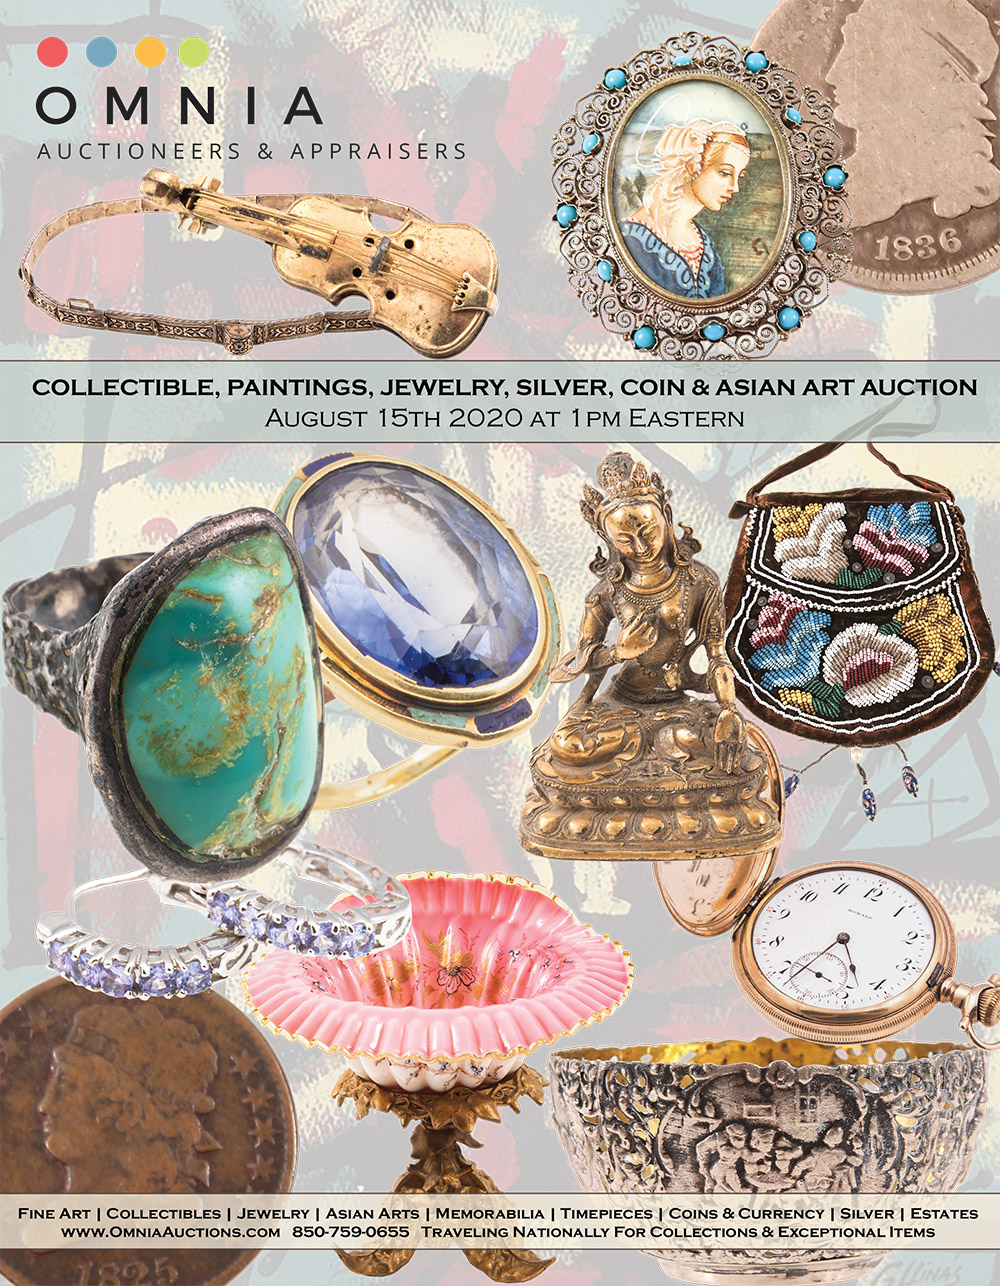 Collectible, Paintings, Jewelry, Silver, Coin & Asian Art Auction